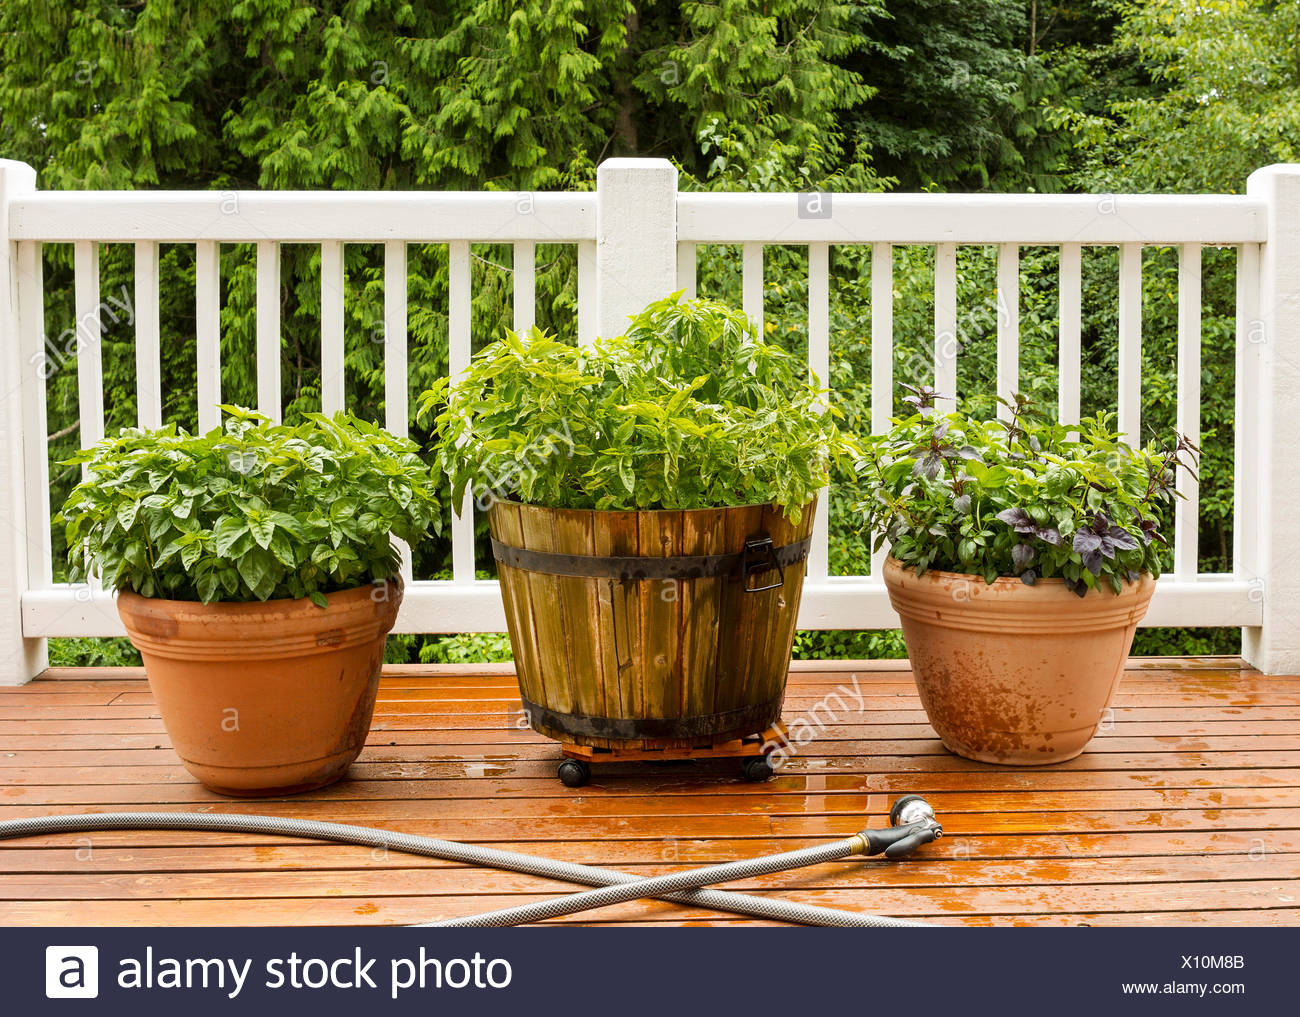 Etonnant Horizontal Photo Of A Home Herb Garden, With Watering Hose In Front Of Pots  On Cedar Deck With White Railings And Trees In Background